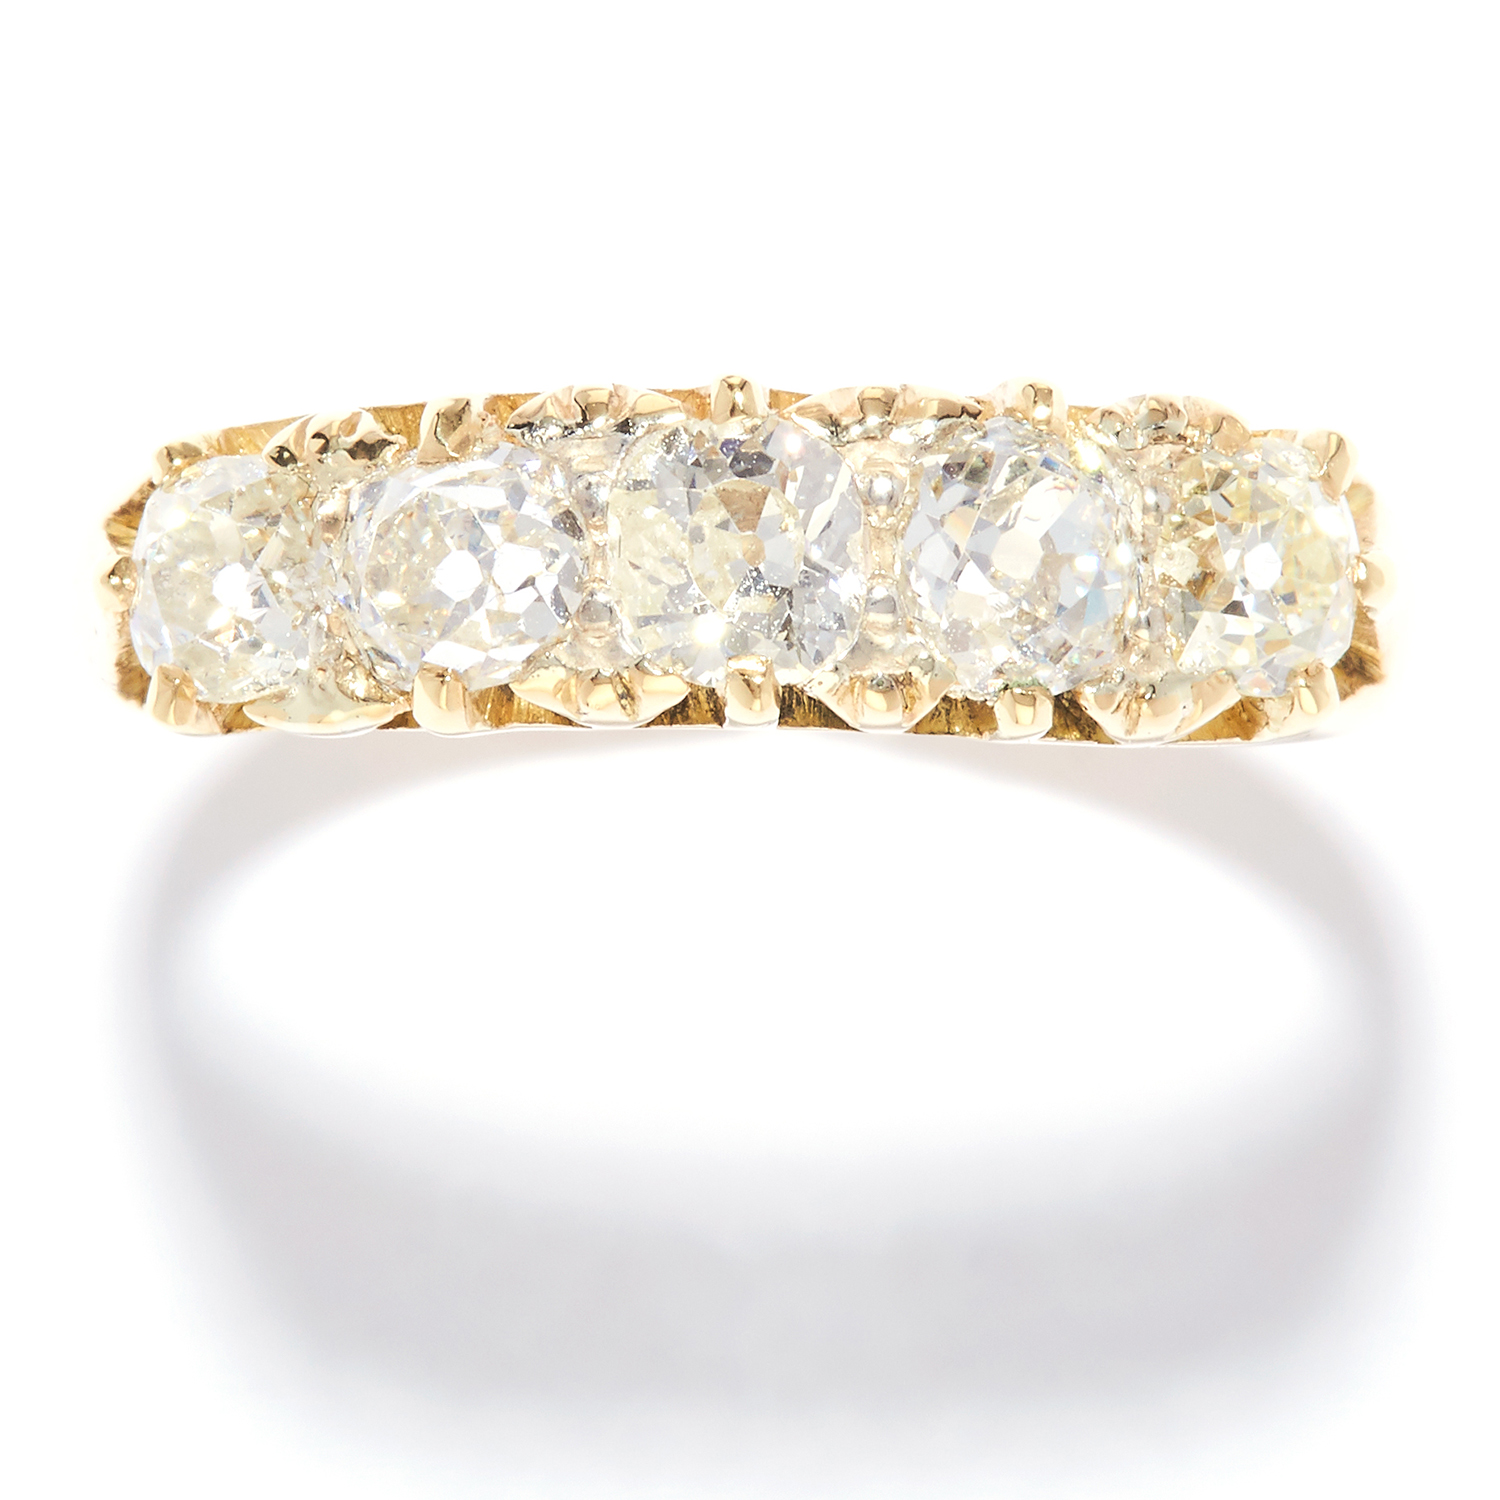 ANTIQUE 1.85 CARAT FIVE STONE DIAMOND RING in 18ct yellow gold, set with five old cut diamonds